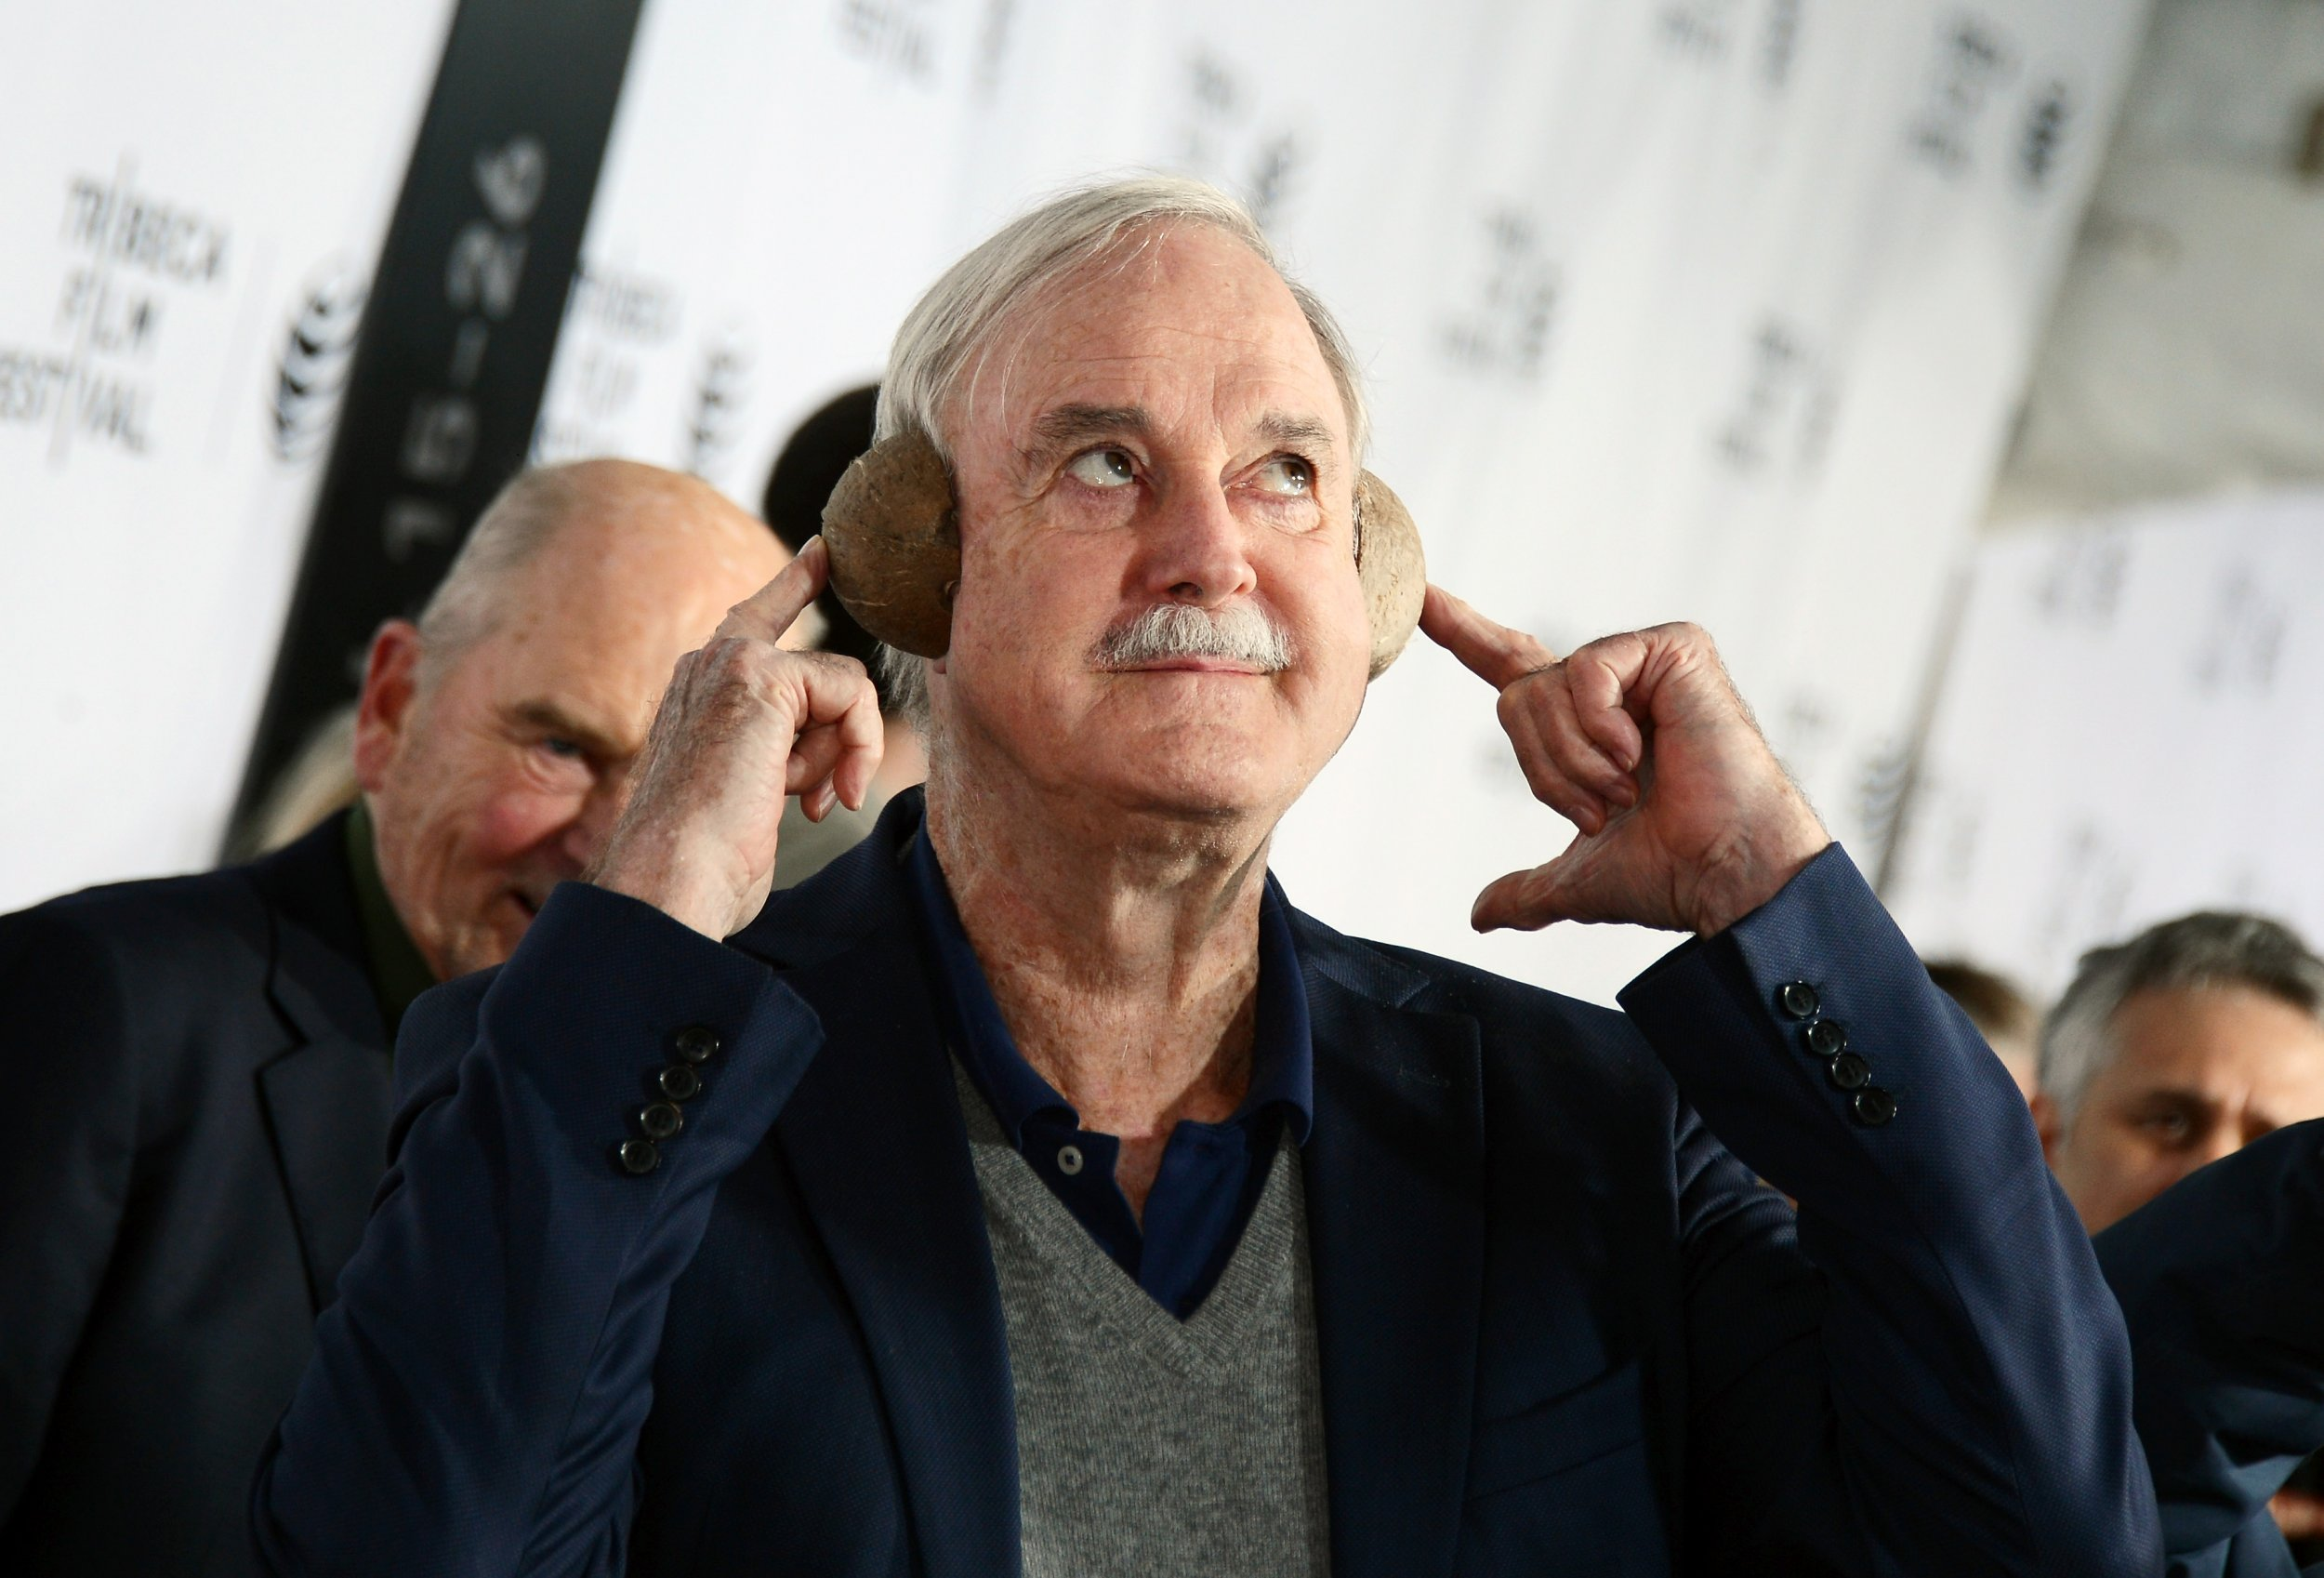 John Cleese has called for equality between men and women in tennis.